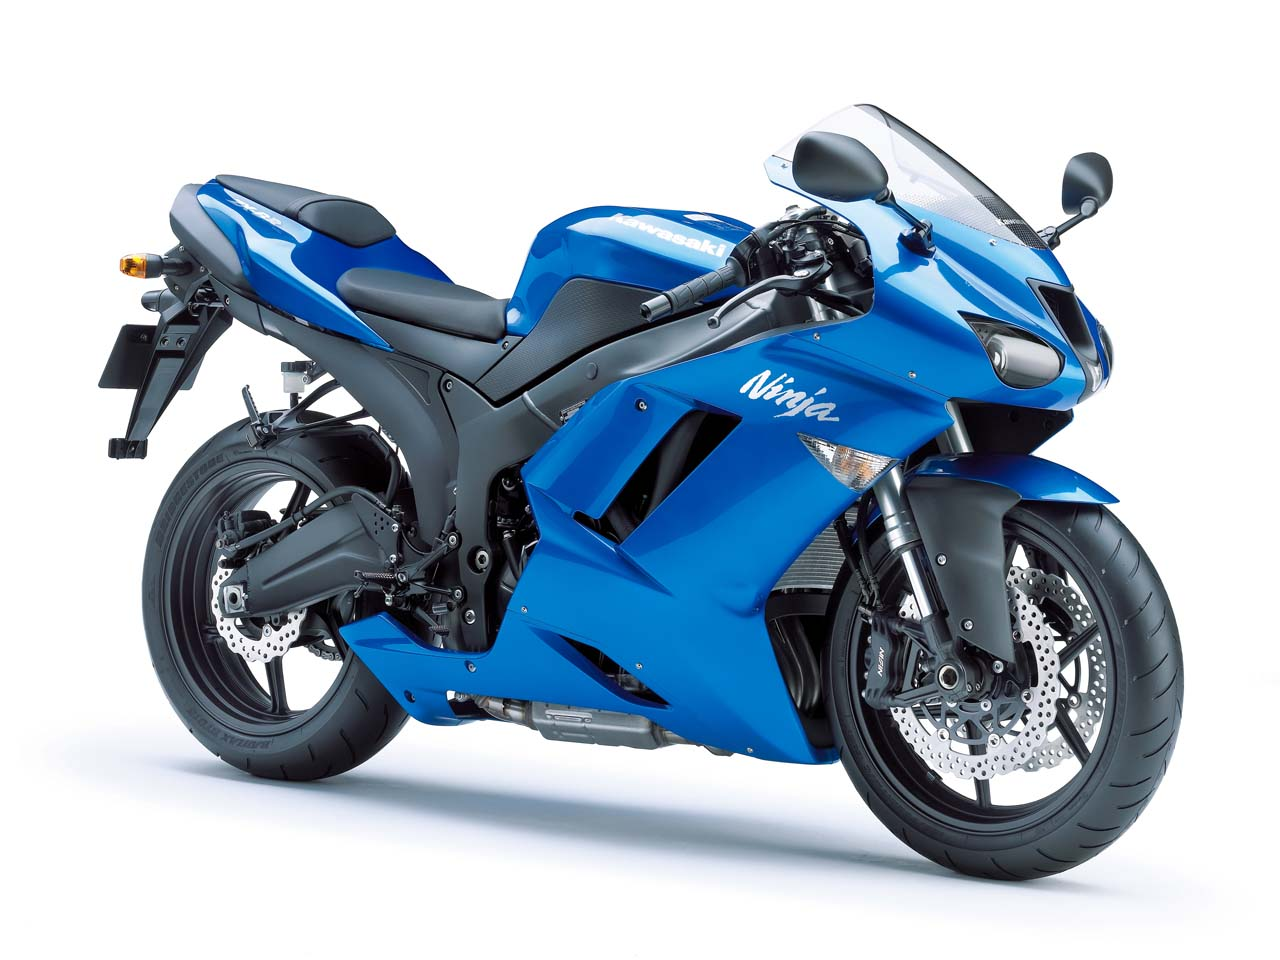 New Automotive News and Images: Best Motorcycle - Kawasaki ...